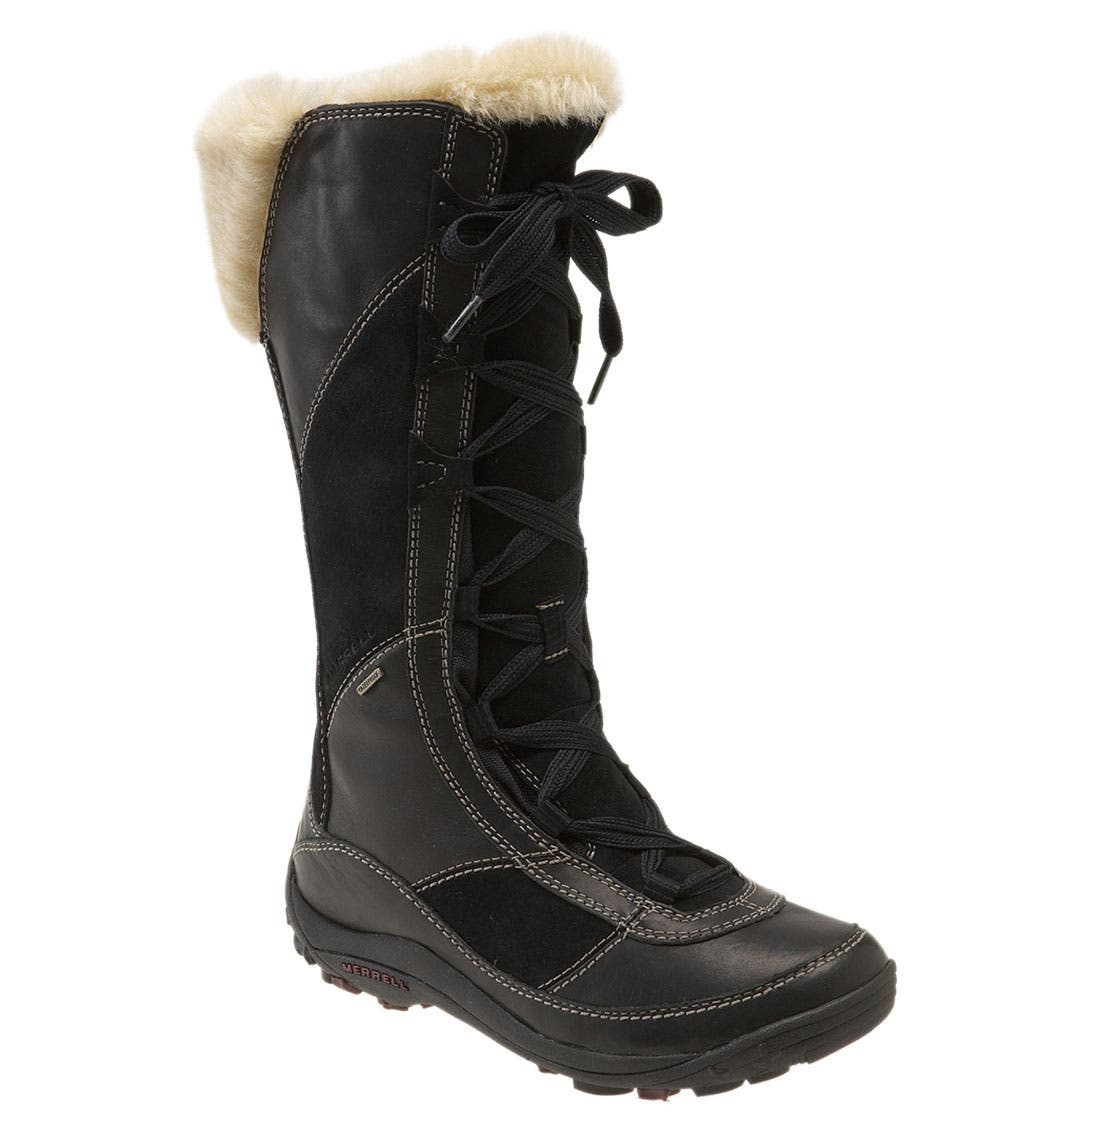 'Prevoz' Waterproof Tall Boot, Main, color, 001